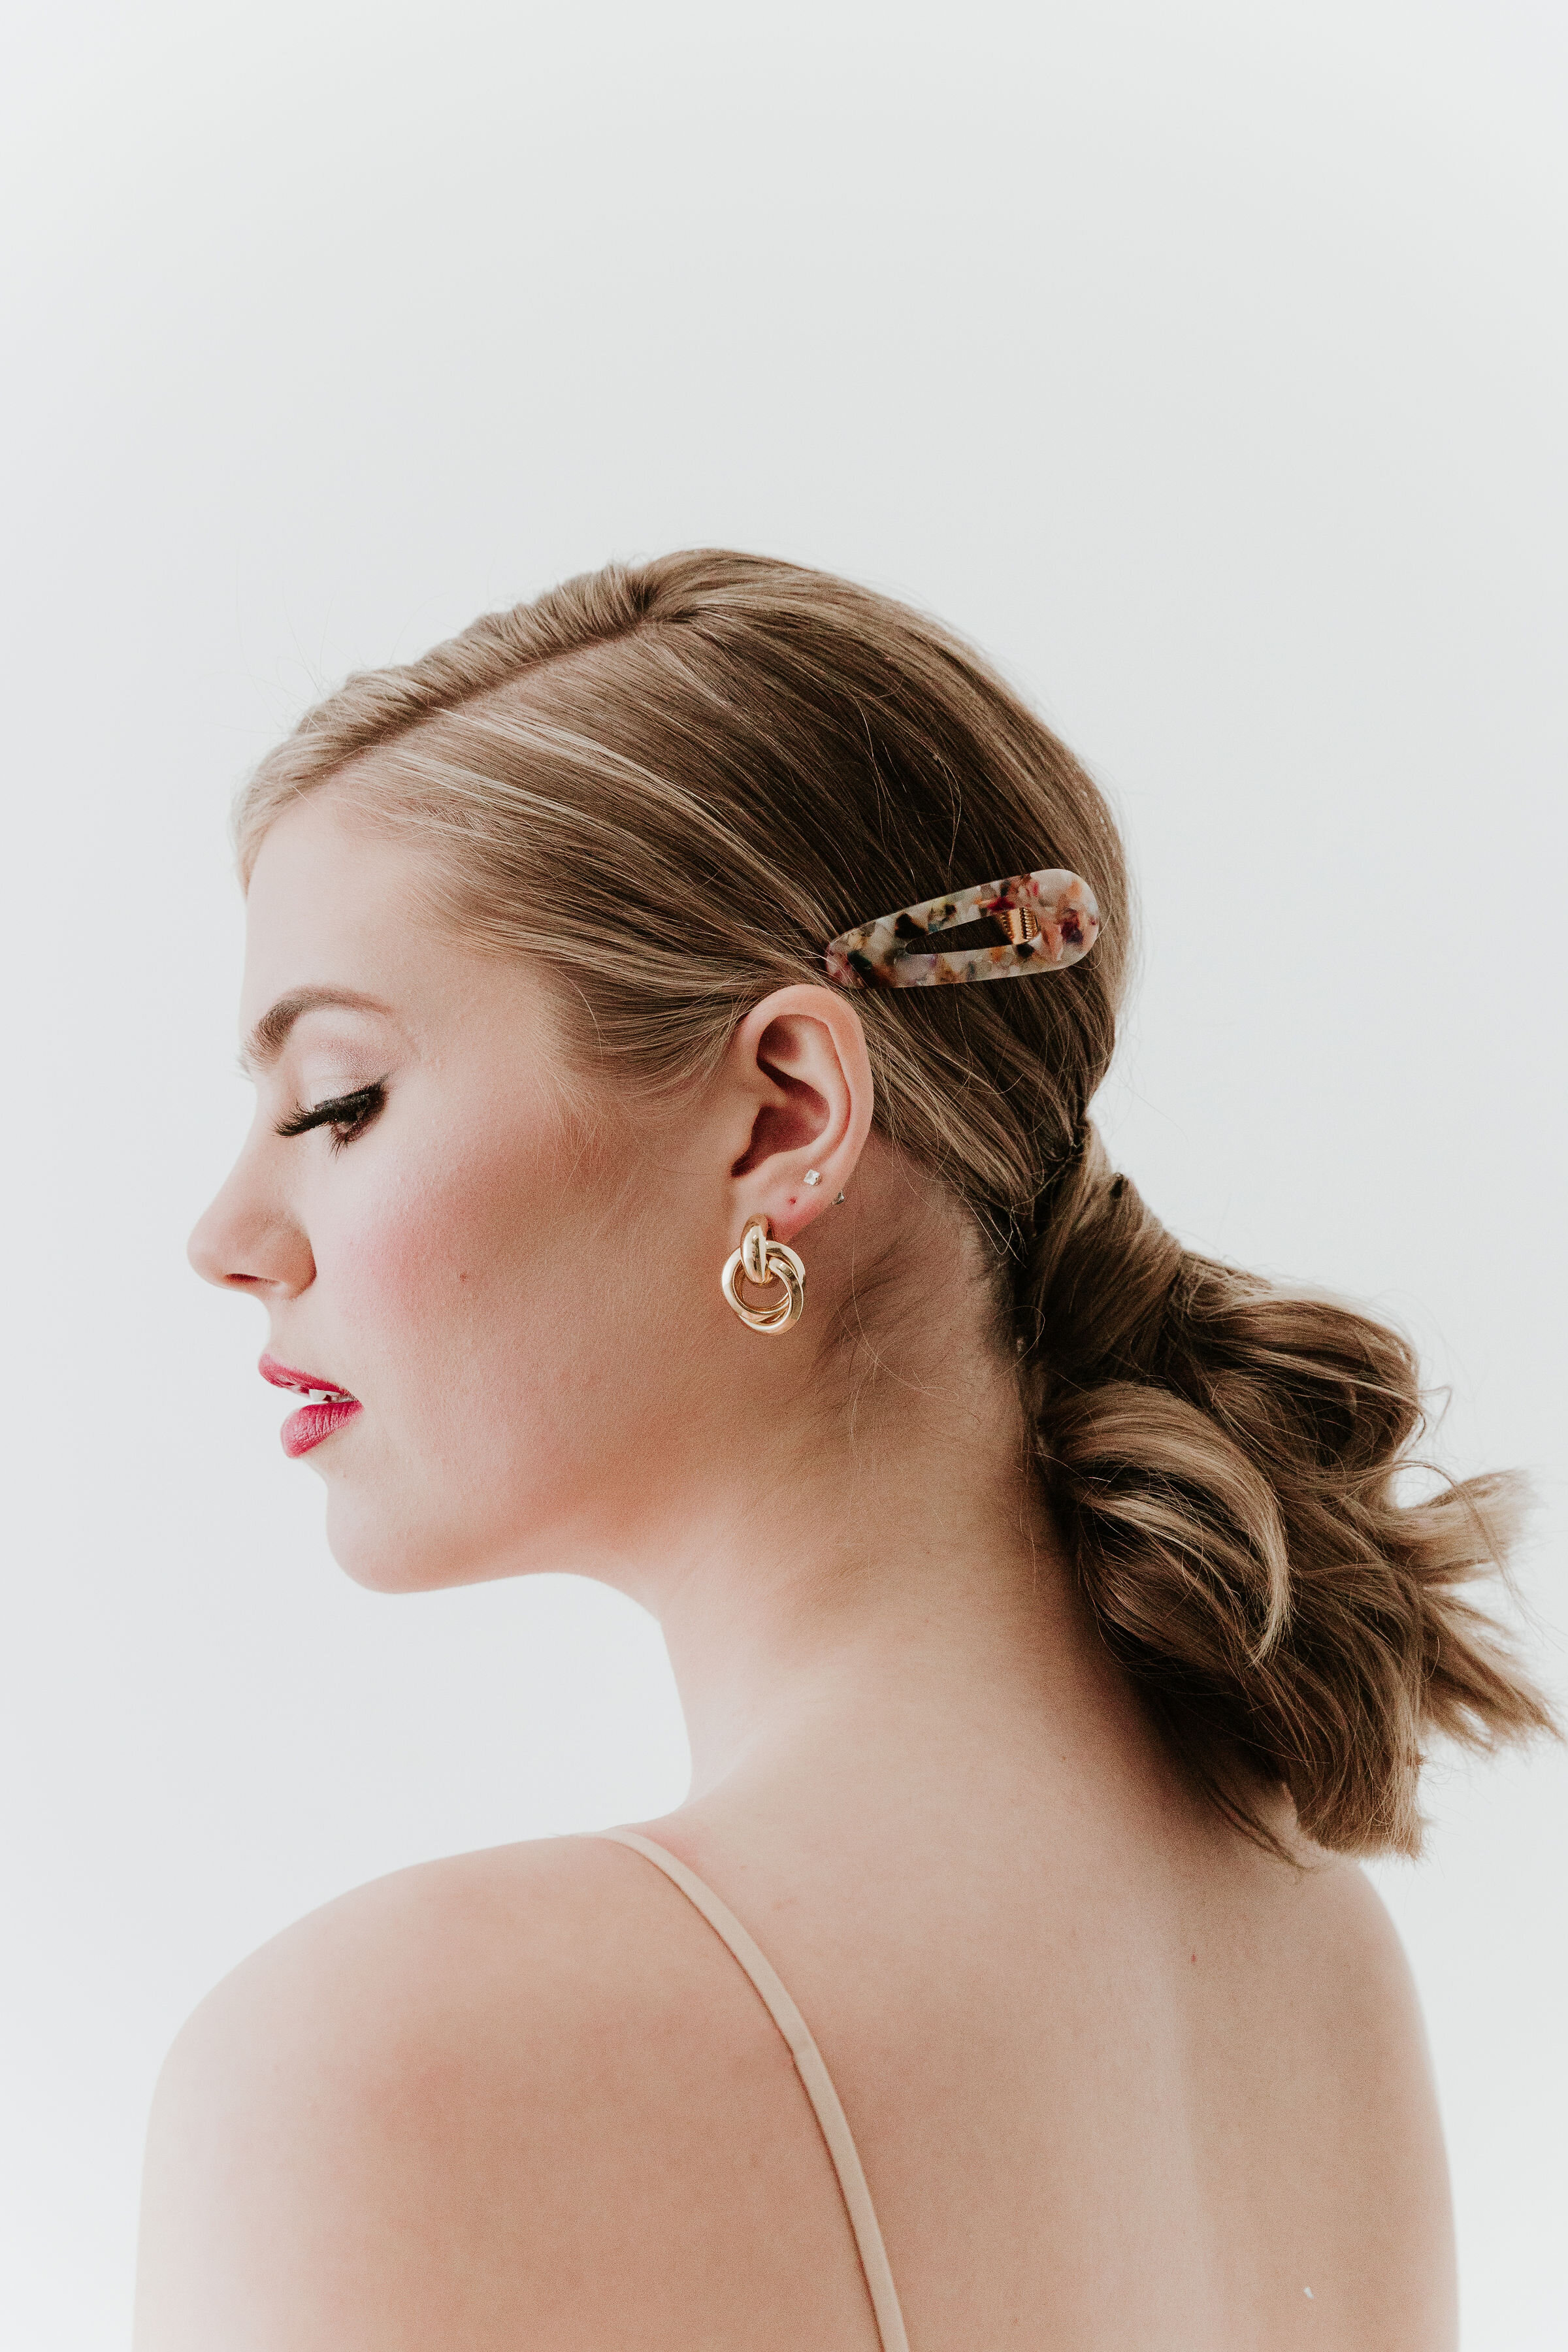 8 Glam Ponytail Hairstyles Every Bridesmaid Can Rock - on the Bronte Bride Blog